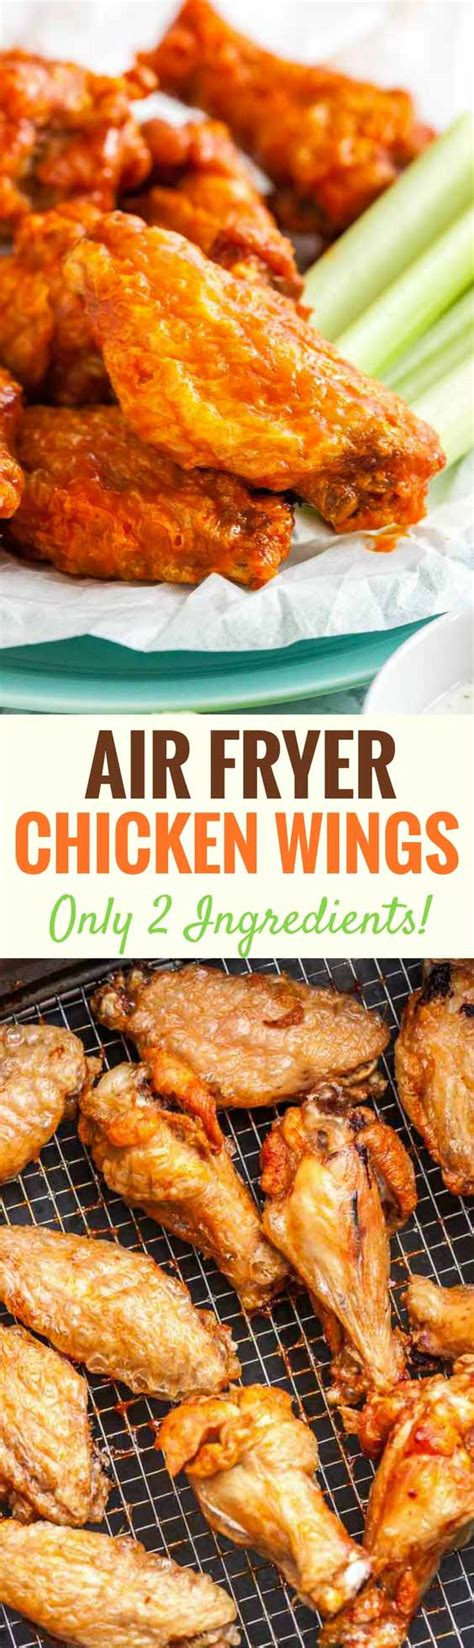 fryer wings chicken air crispy cooking recipes extra oven wing platedcravings easy frozen cravings plated fried recipe cook fry without